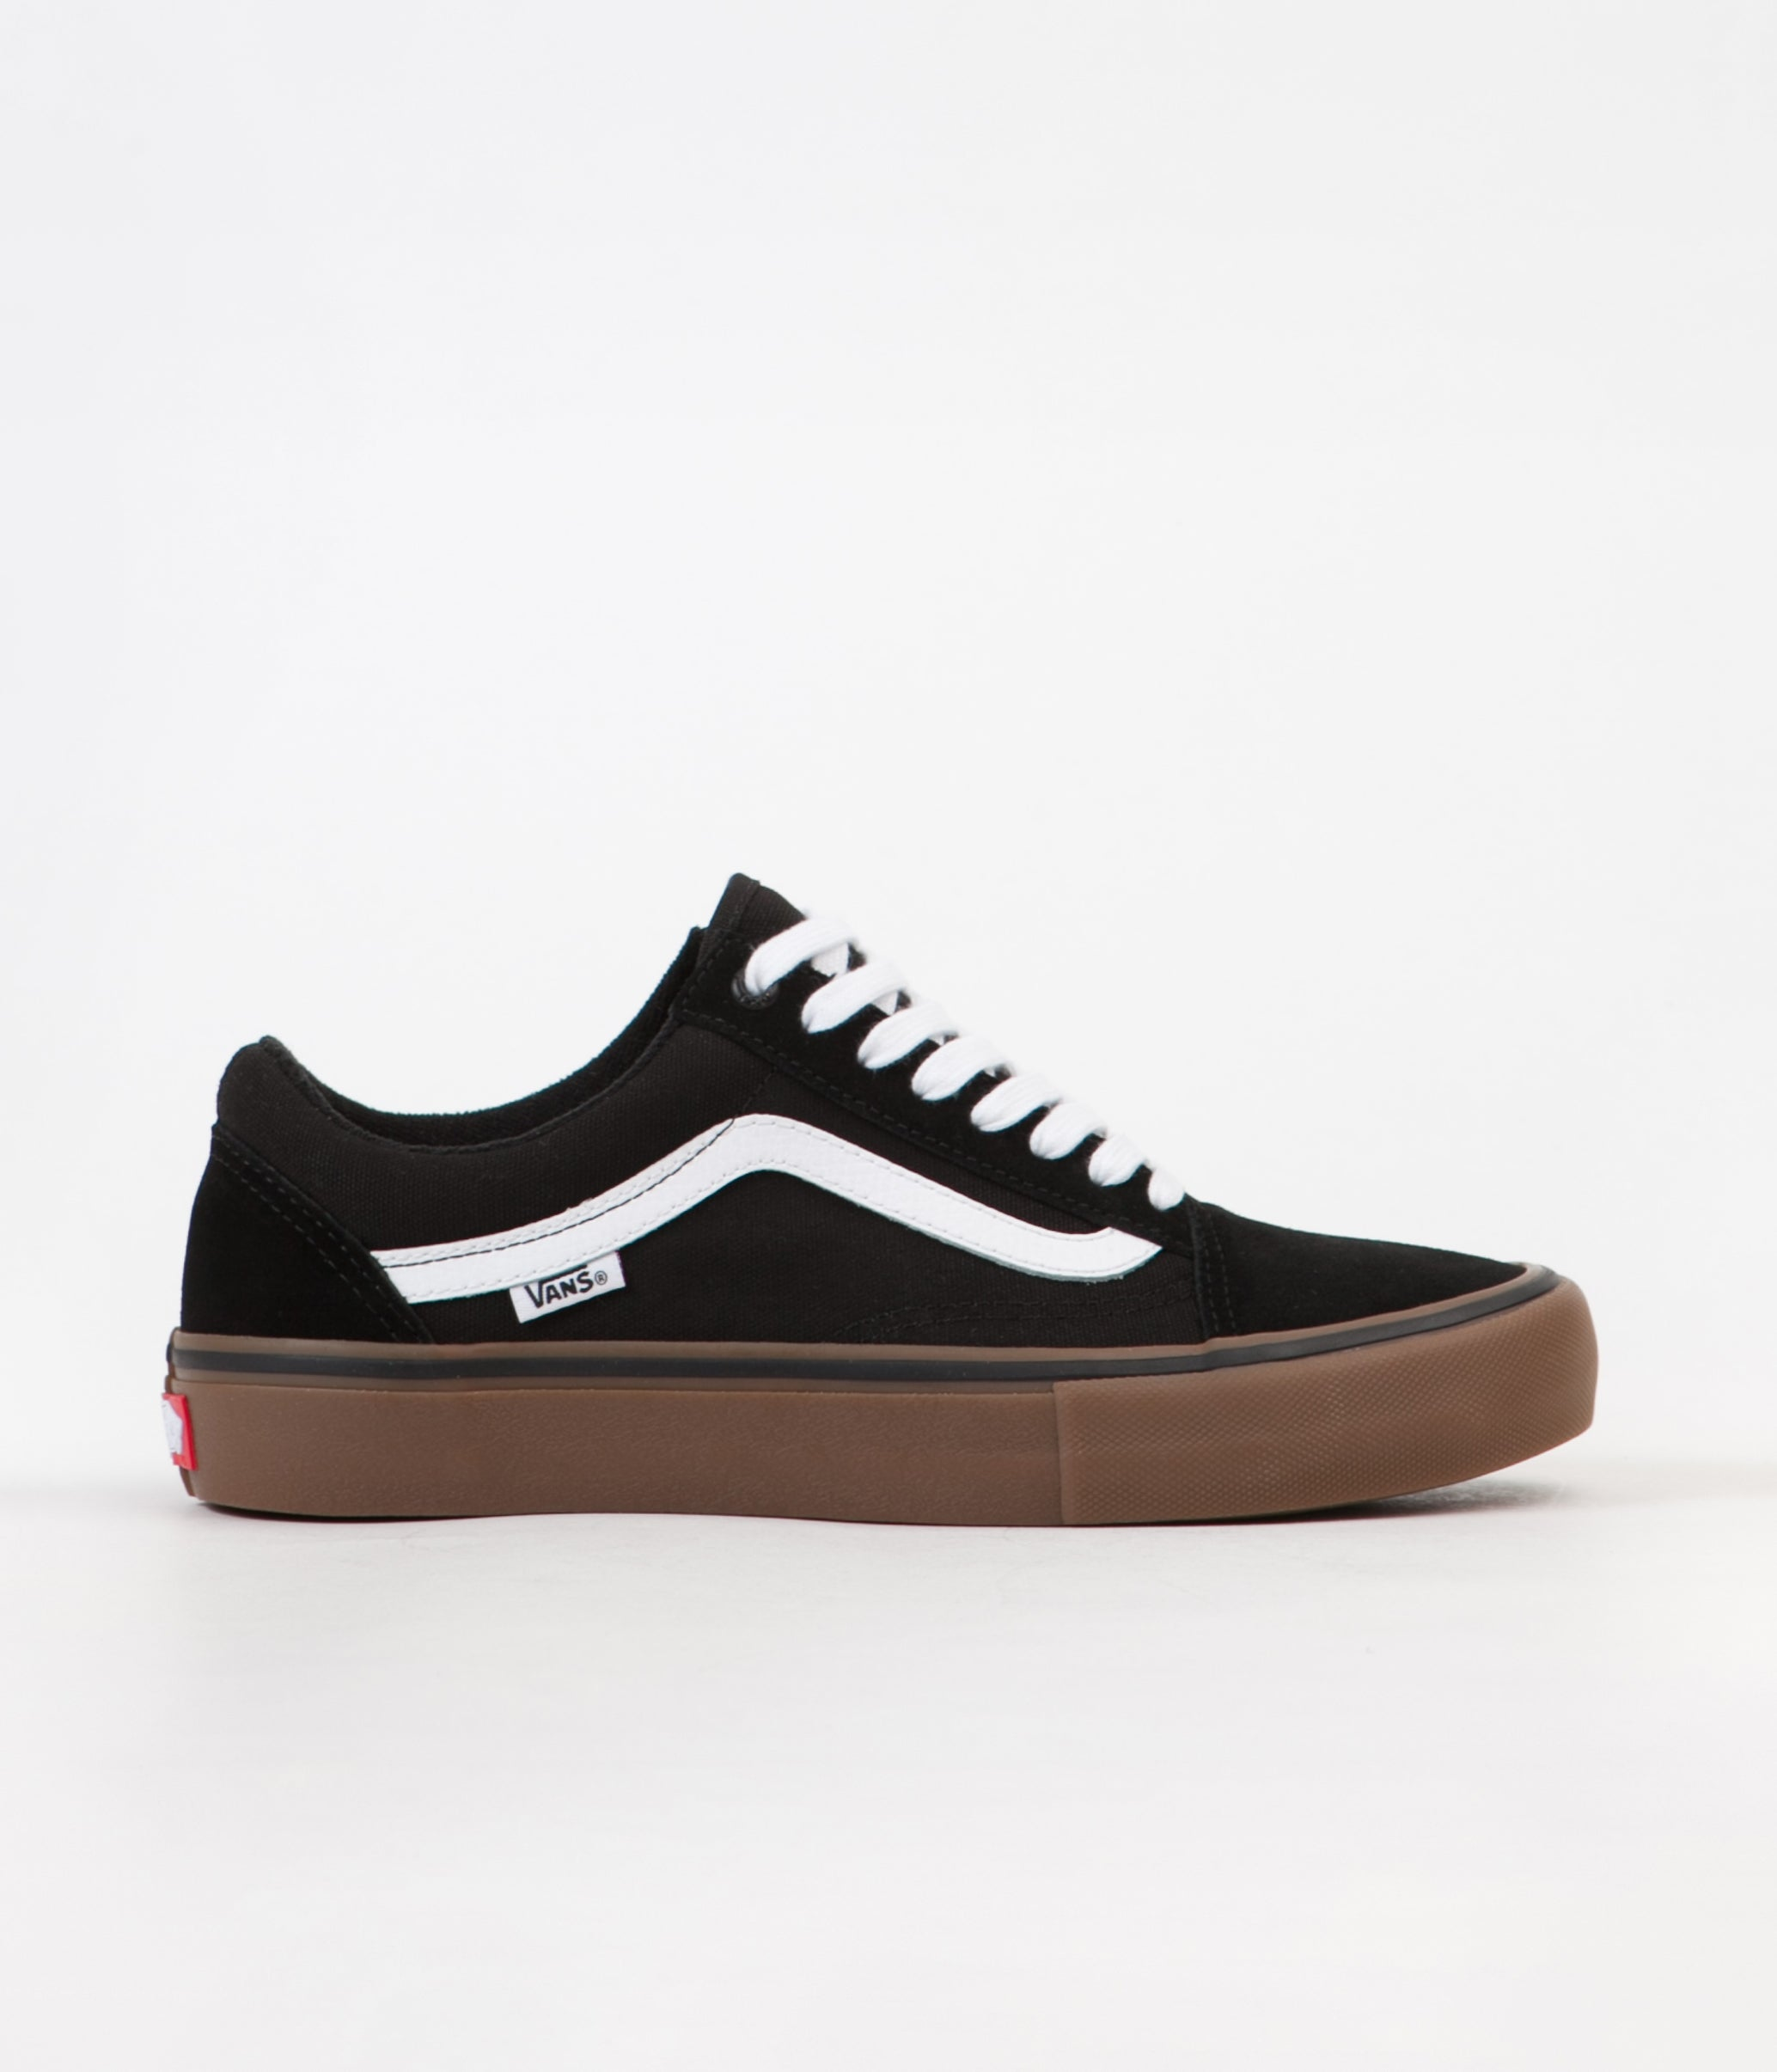 8cc7cbb9e19 Vans Old Skool Pro Shoes - Black   White   Medium Gum